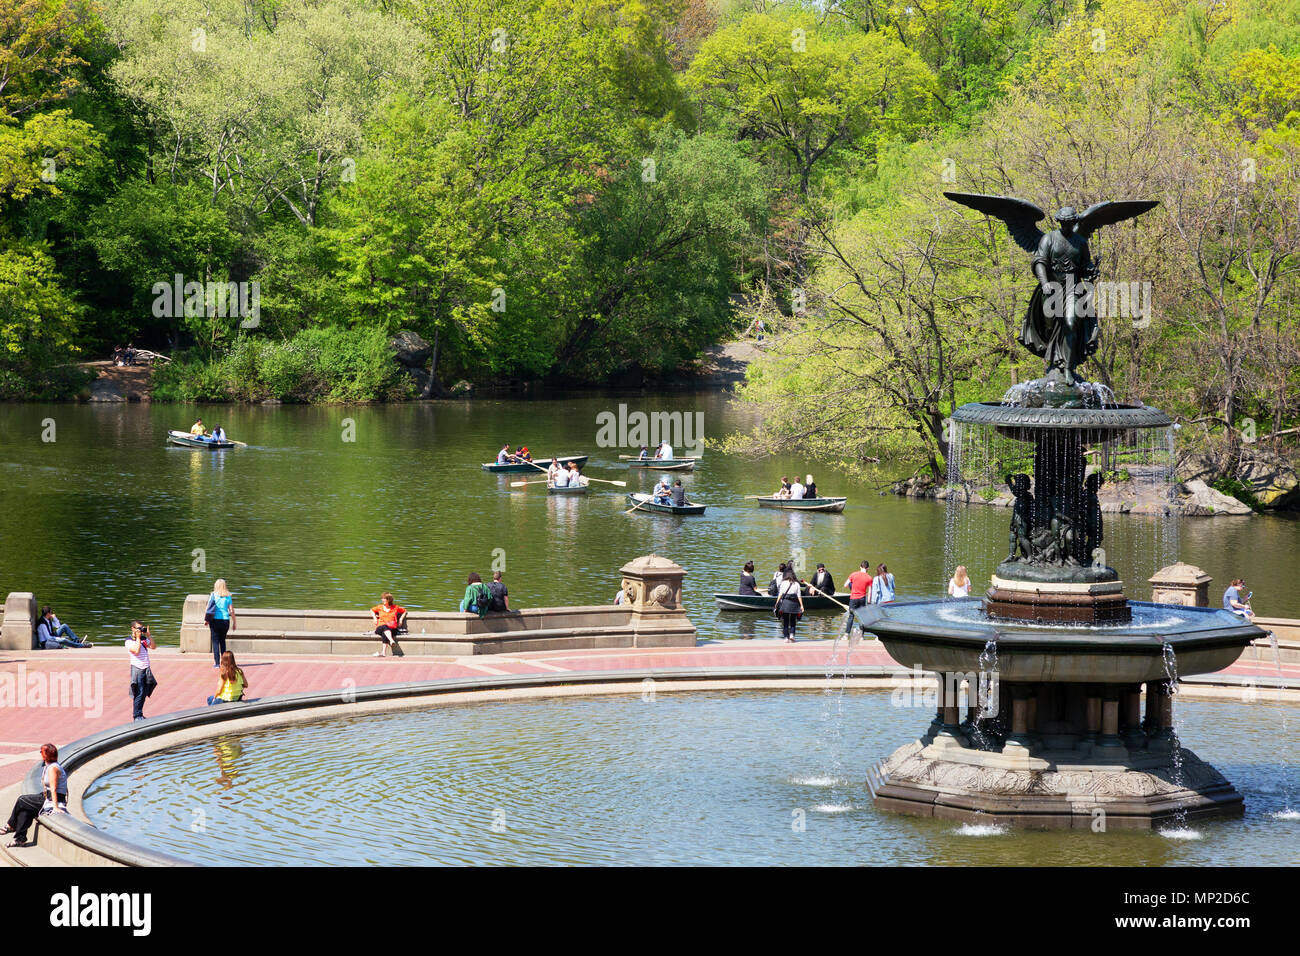 People rowing boats on the boating lake, Central Park, New York city USA - Stock Image